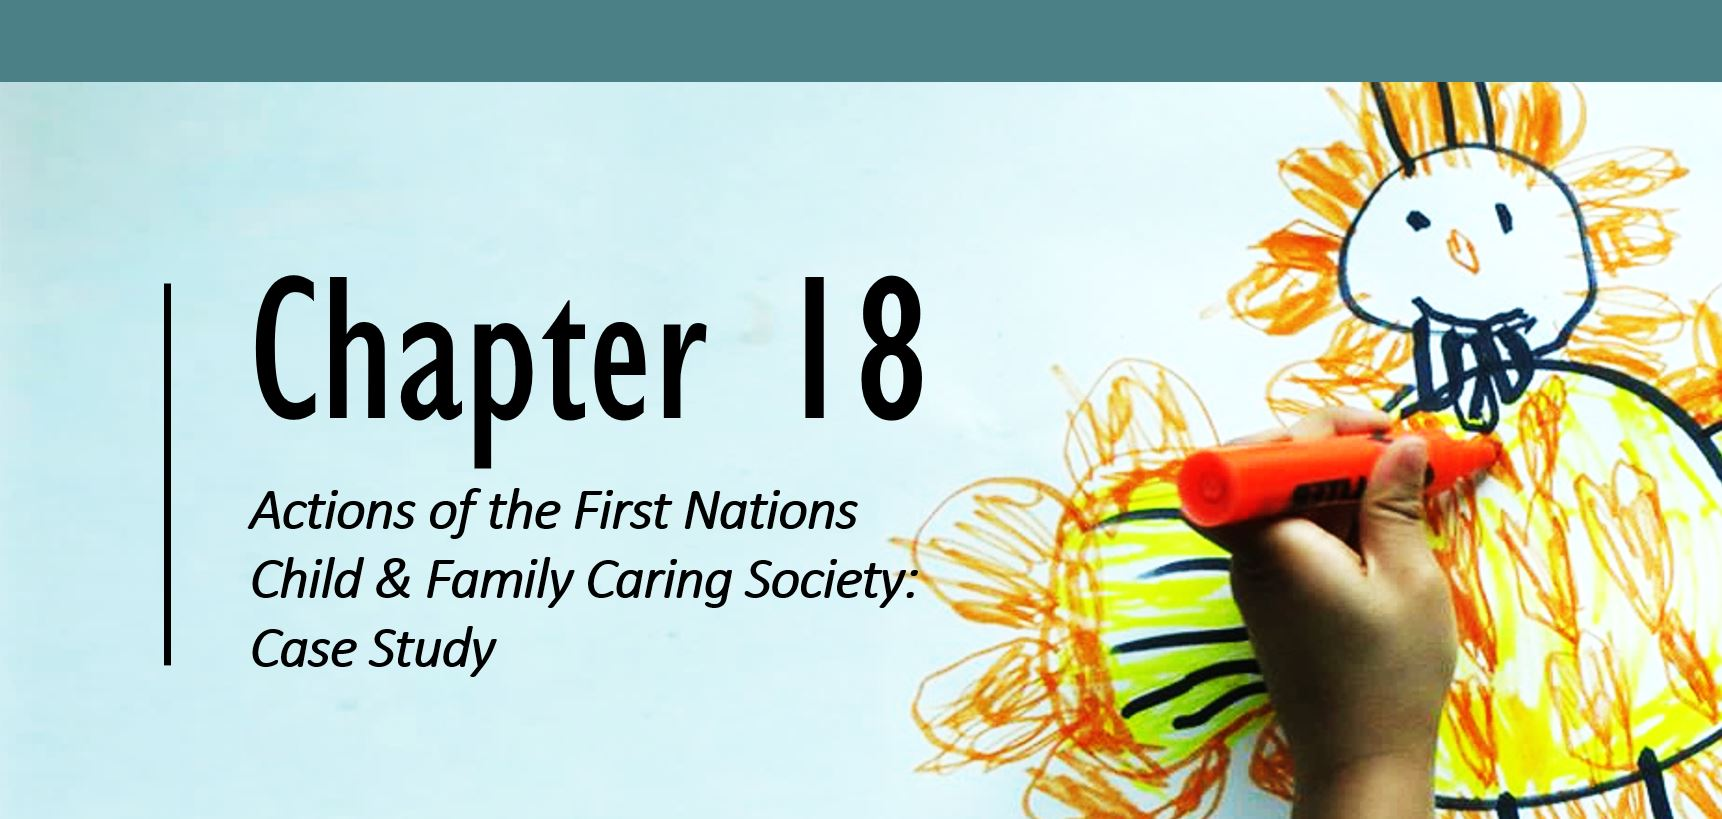 Chapter 18 Actions of the First Nations Child & Family Caring Society: Case Study